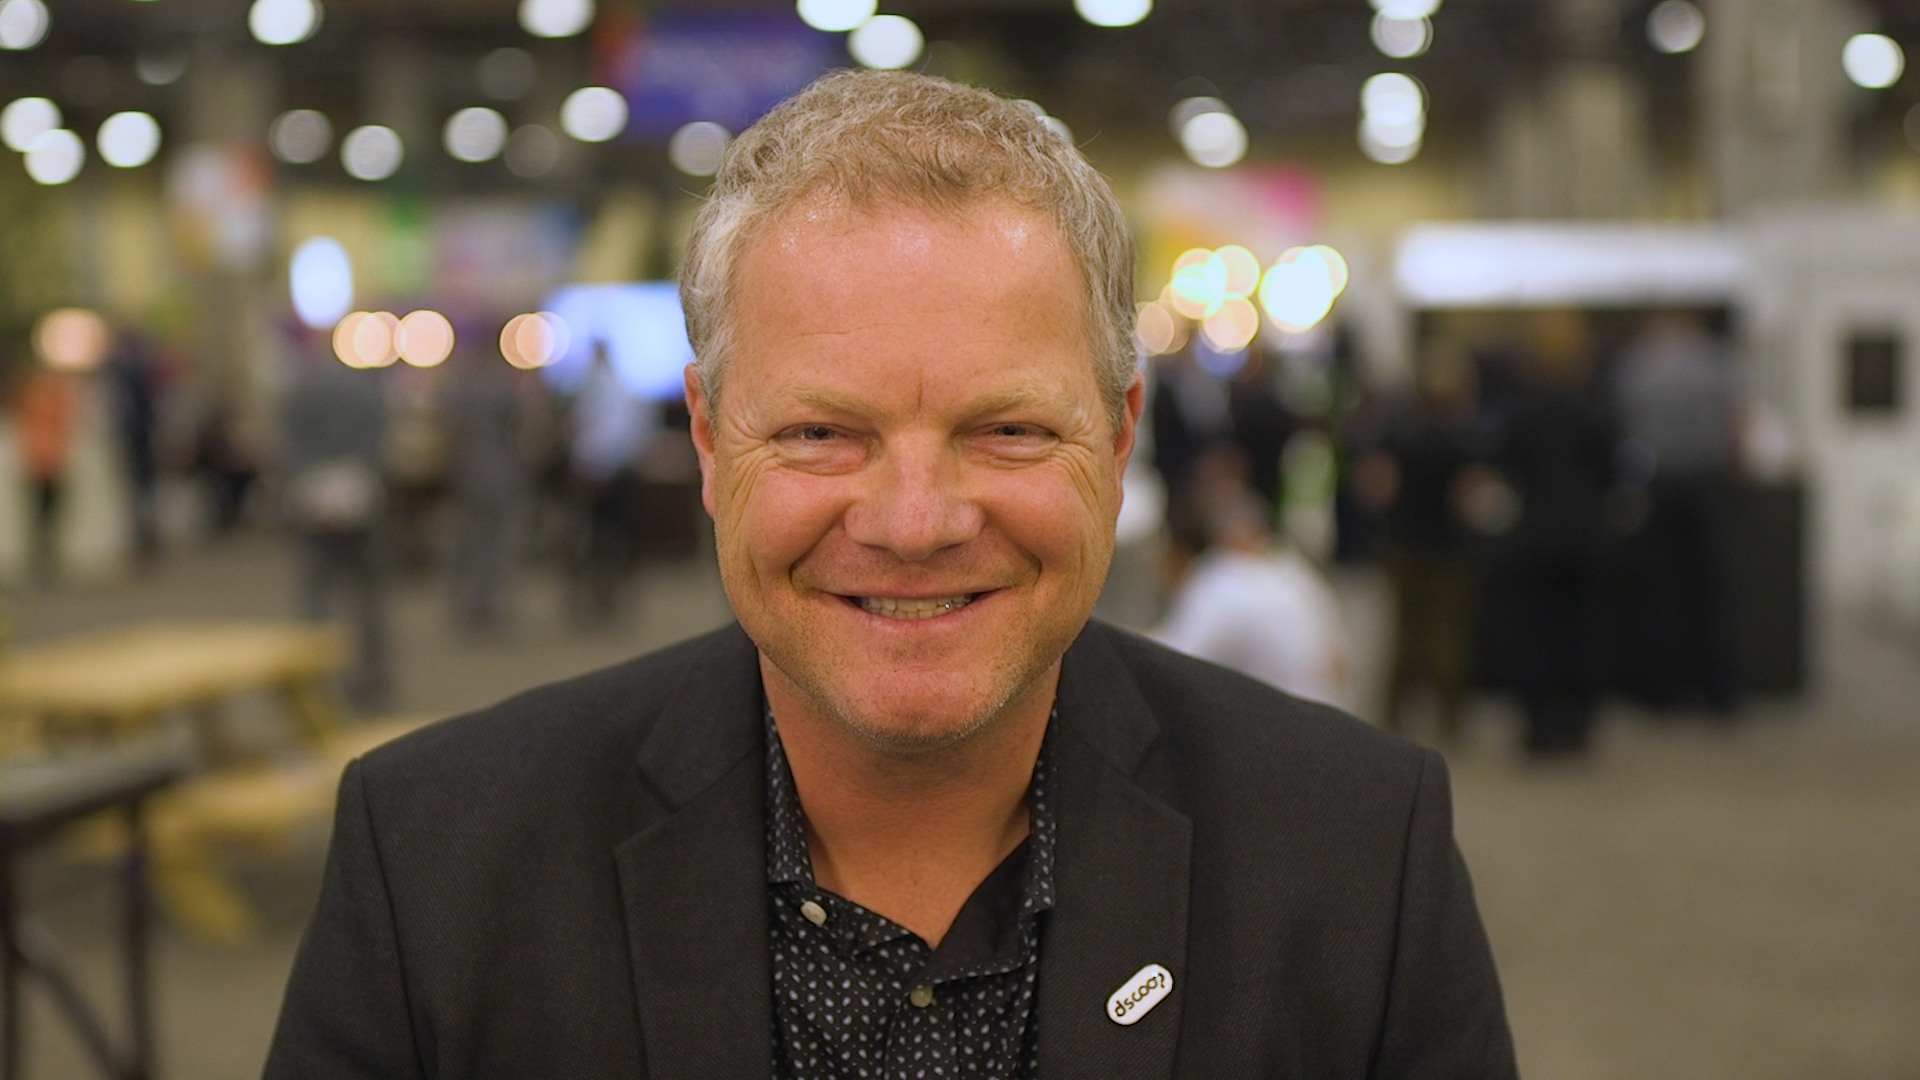 Video preview: Dscoop from Annual Event to Networking Platform